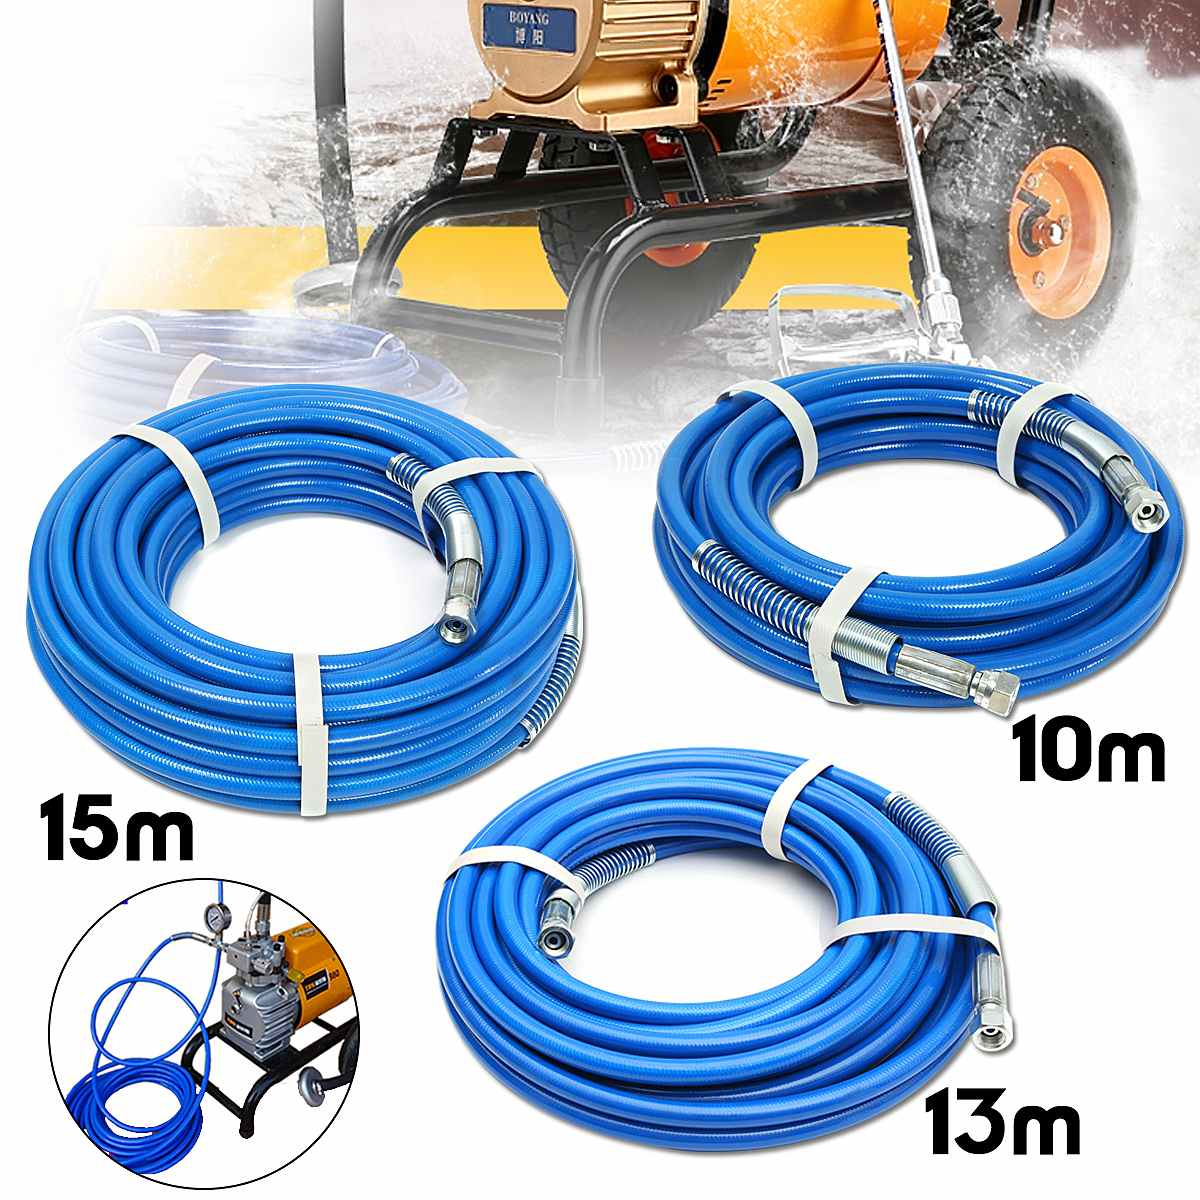 10/13/15m Spray Hose Airless Hose 5000PSI High Pressure Pipe Airless Sprayer Airless Paint Hose For Sprayer G Un Sprayer Water